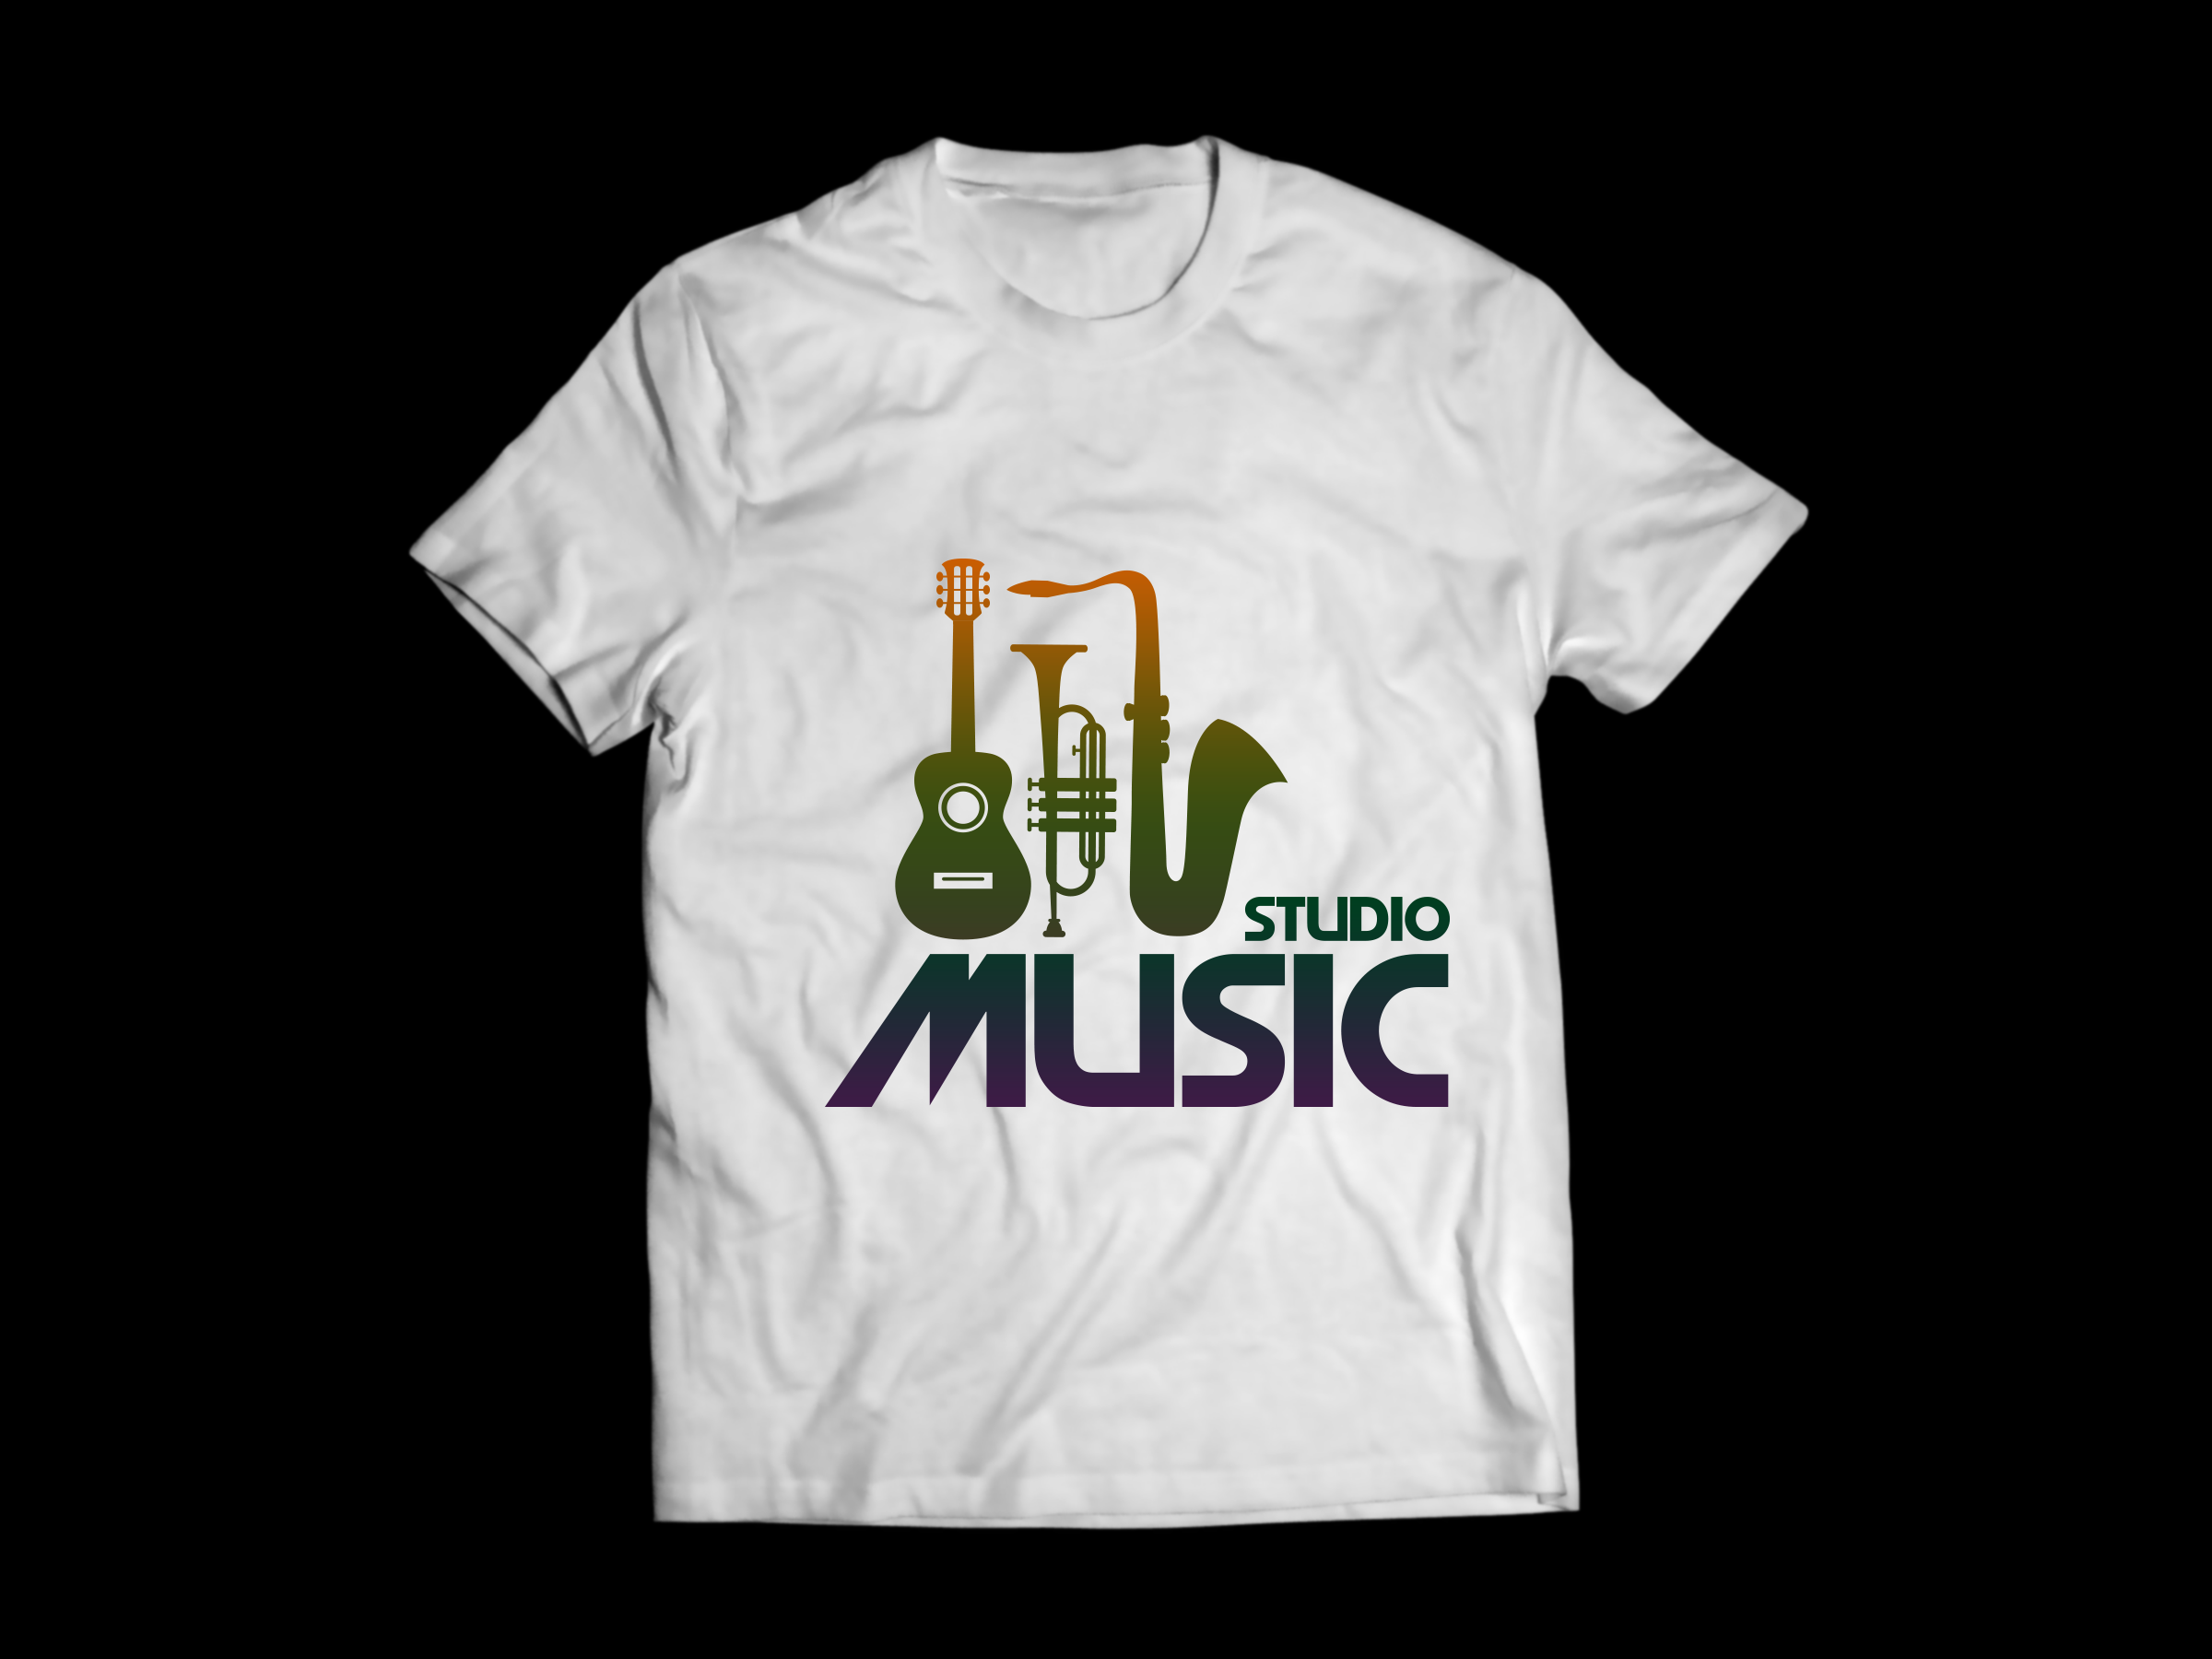 Music Studio T Shirt Design By Graphic Art Dribbble Dribbble